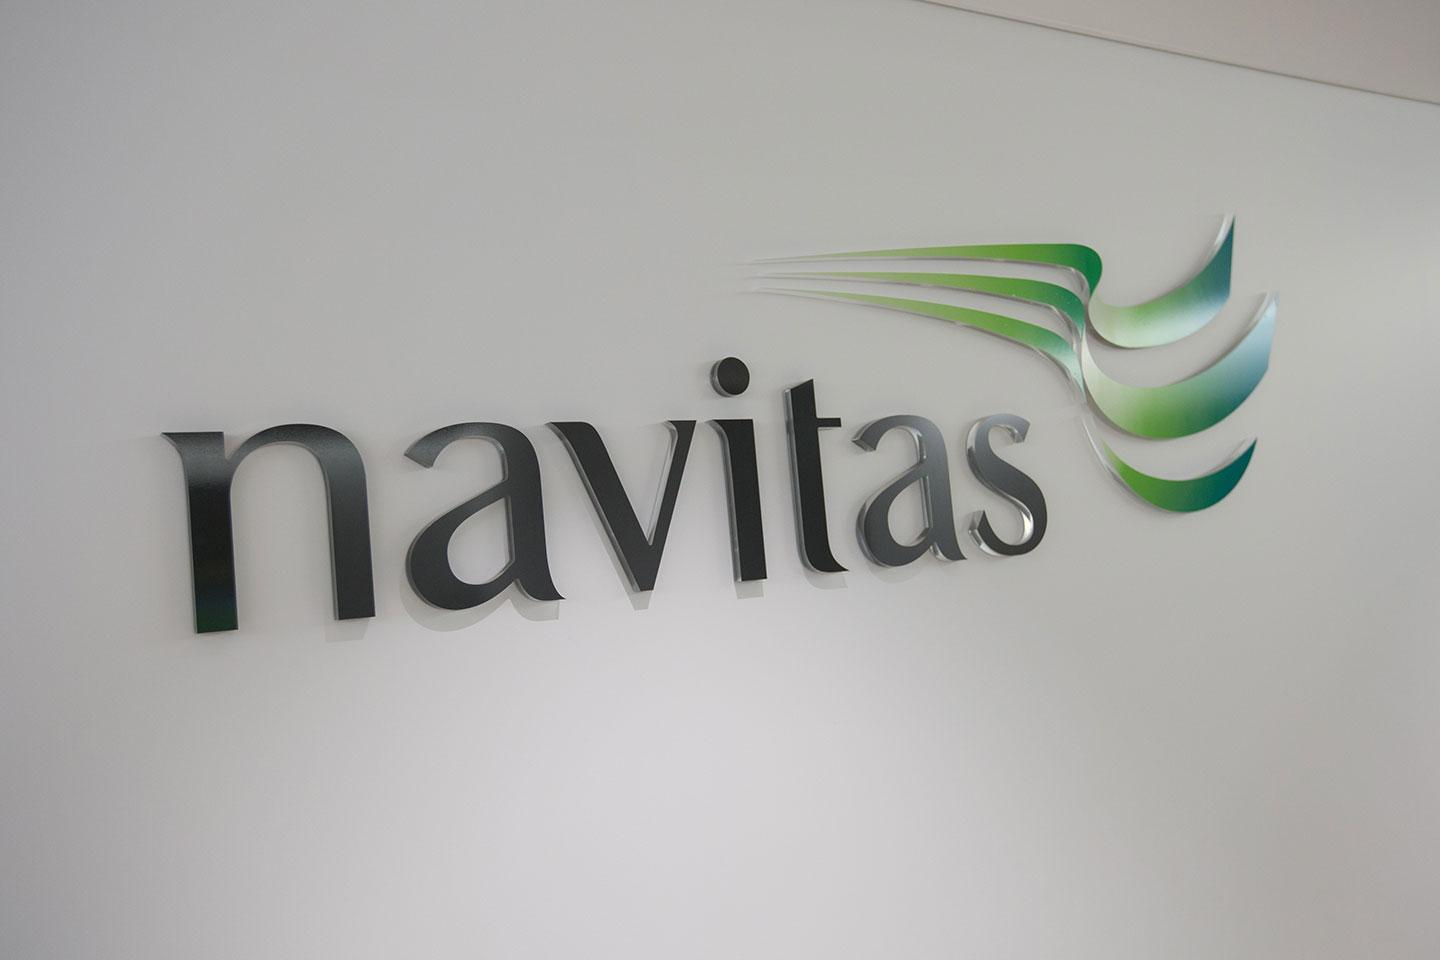 Navitas up 21% on $2bn takeover